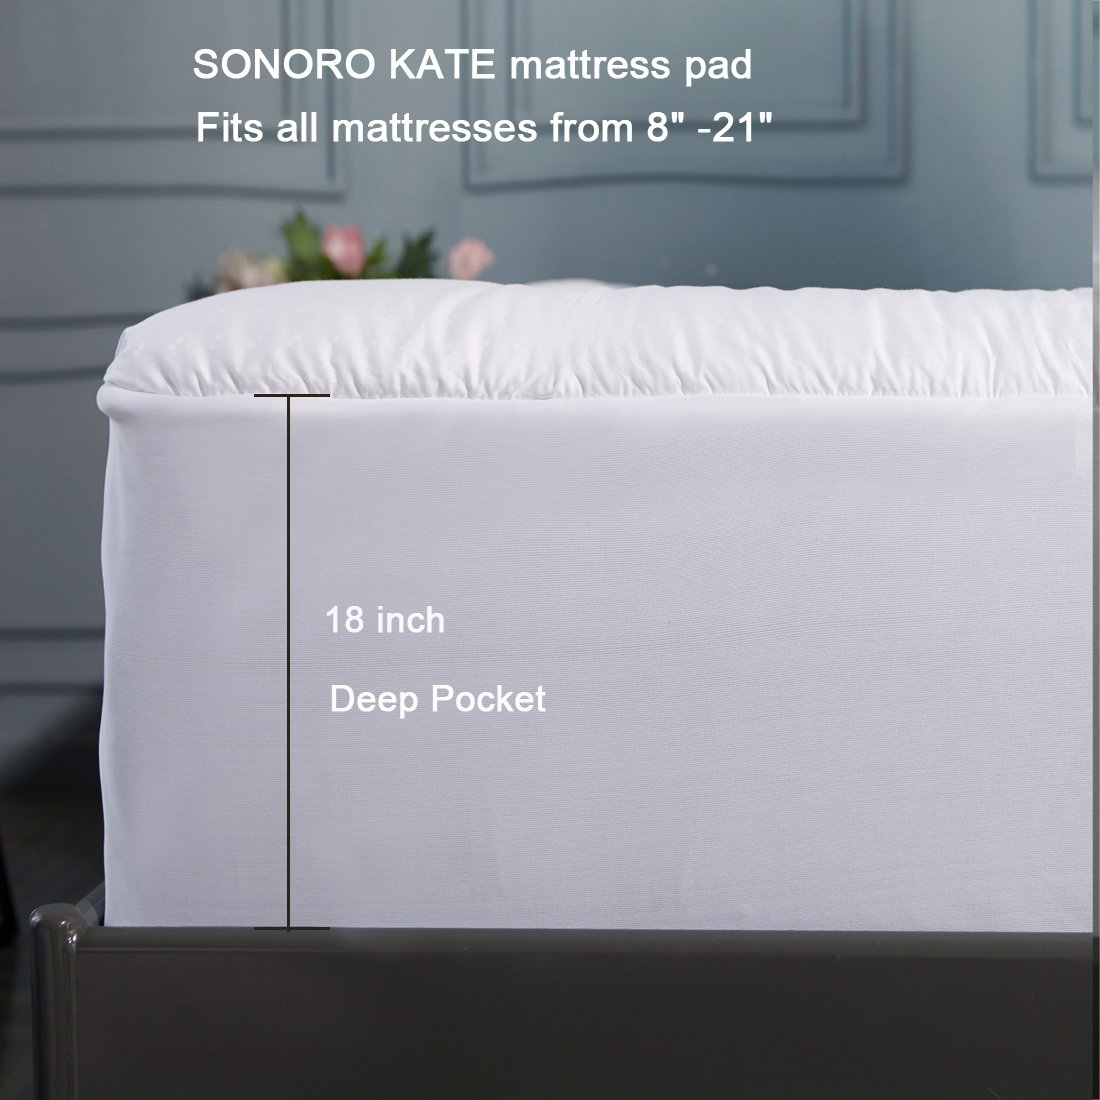 SONORO KATE Mattress Pad Cover Twin XL Size Down Alternative Mattress Topper Fitted Quilted (8-21-Inch Deep Pocket)- Hypoallergenic -(Twin XL, White) by SONORO KATE (Image #6)